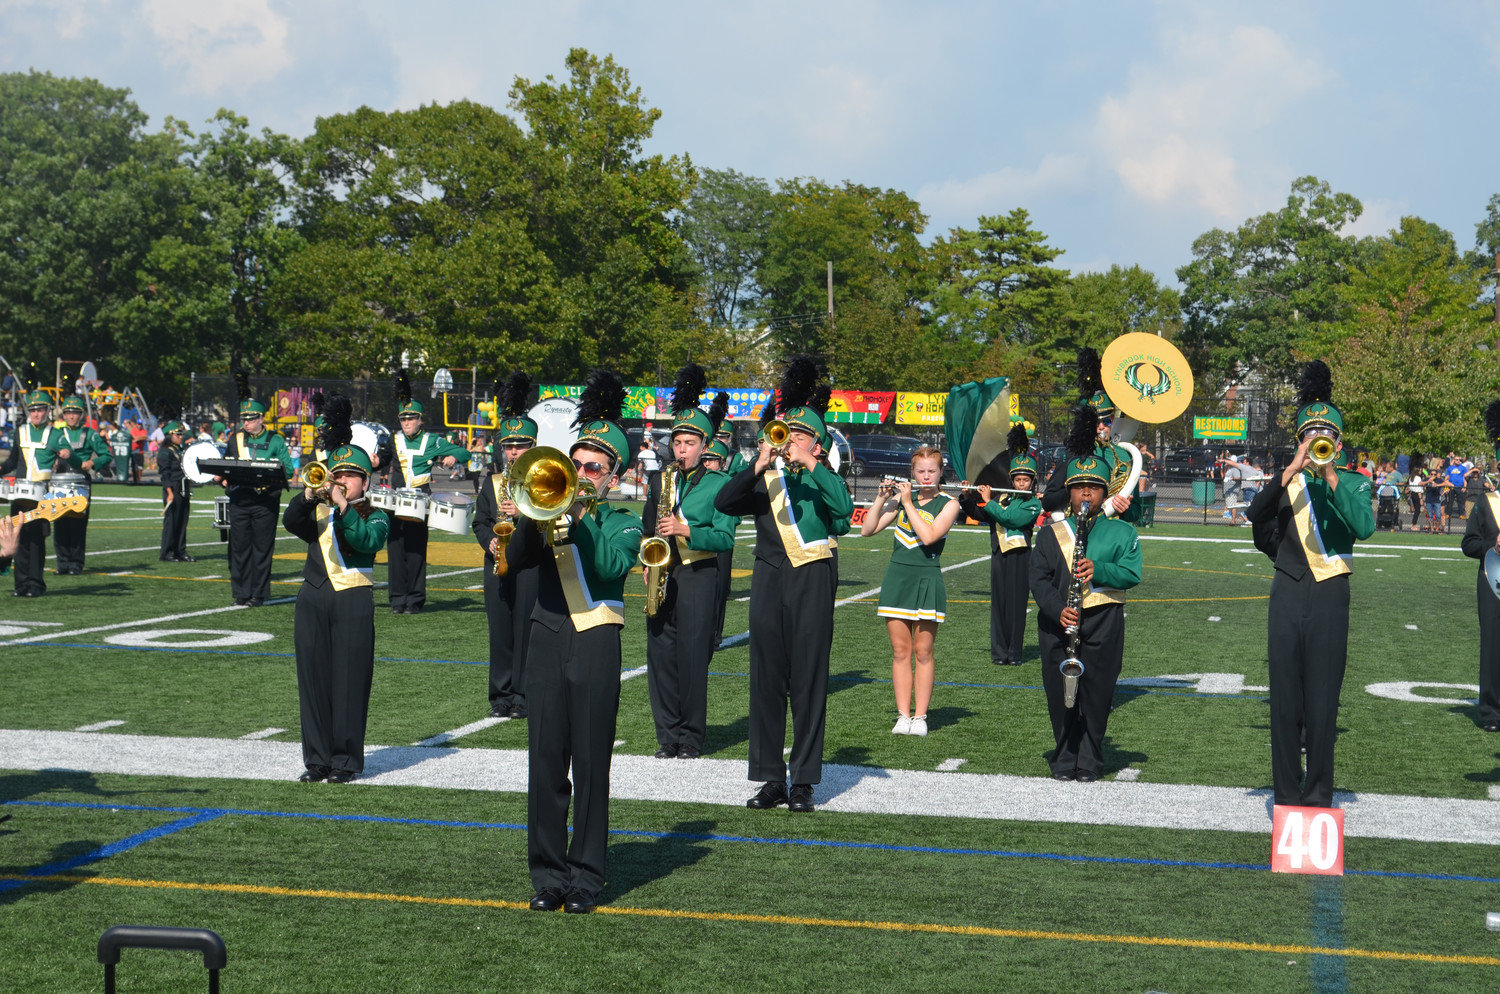 Lynbrook hosts its Homecoming festivities on Sept. 21 with a parade scheduled for 1 p.m. and a game against Floral Park set for 2 p.m.